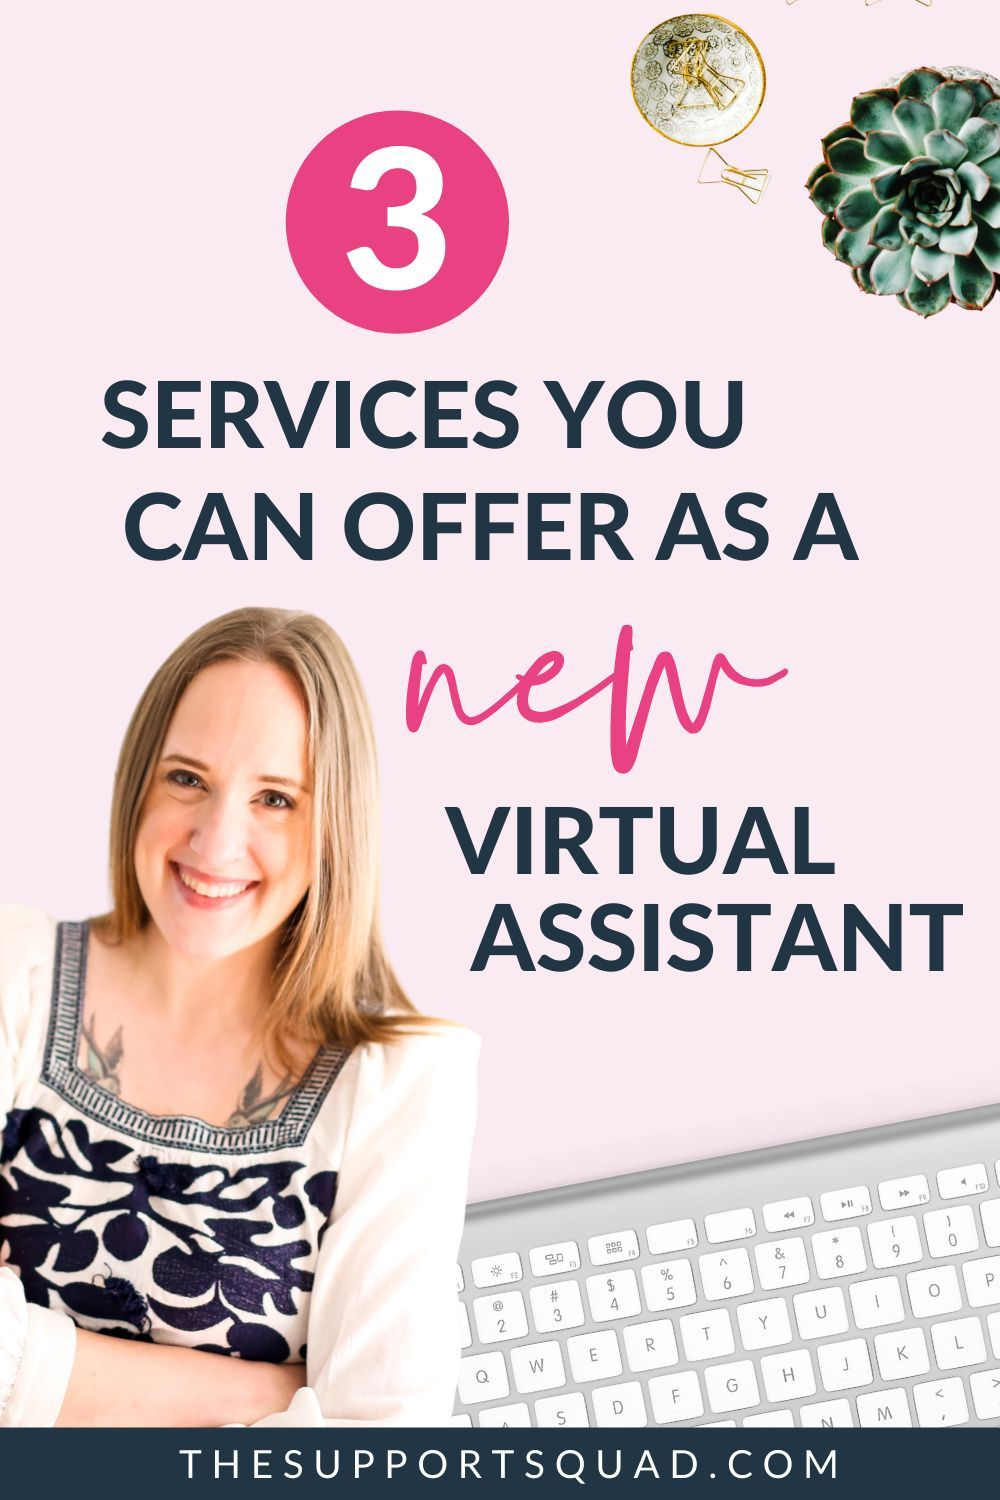 Best Services for Virtual Assistants No Experience